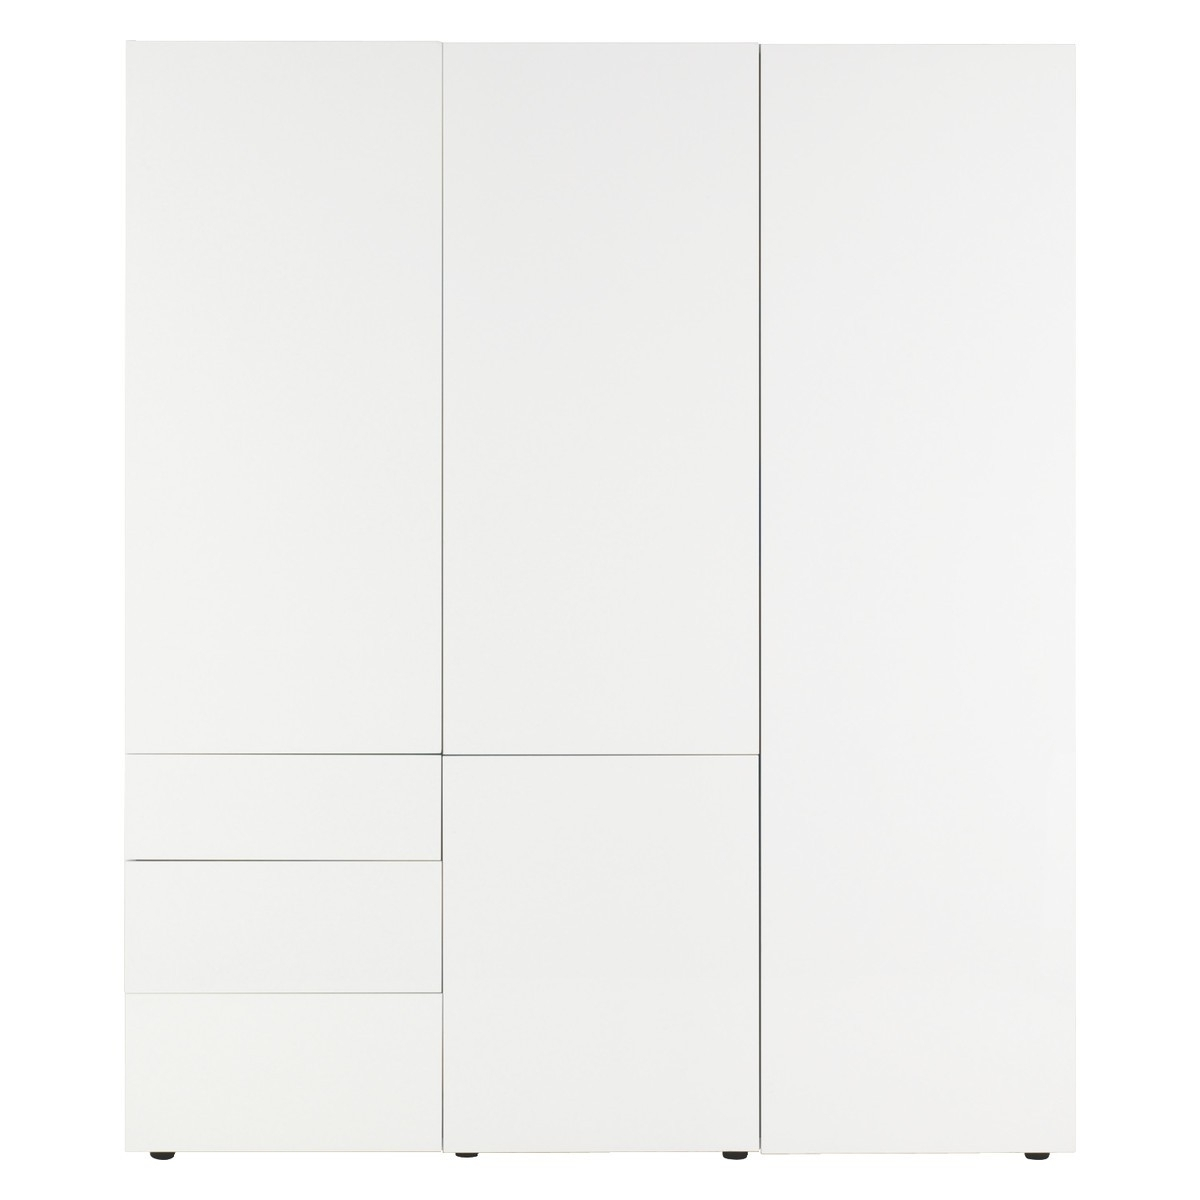 Perouse White 3 Door Wardrobe 180Cm Width (View 8 of 15)